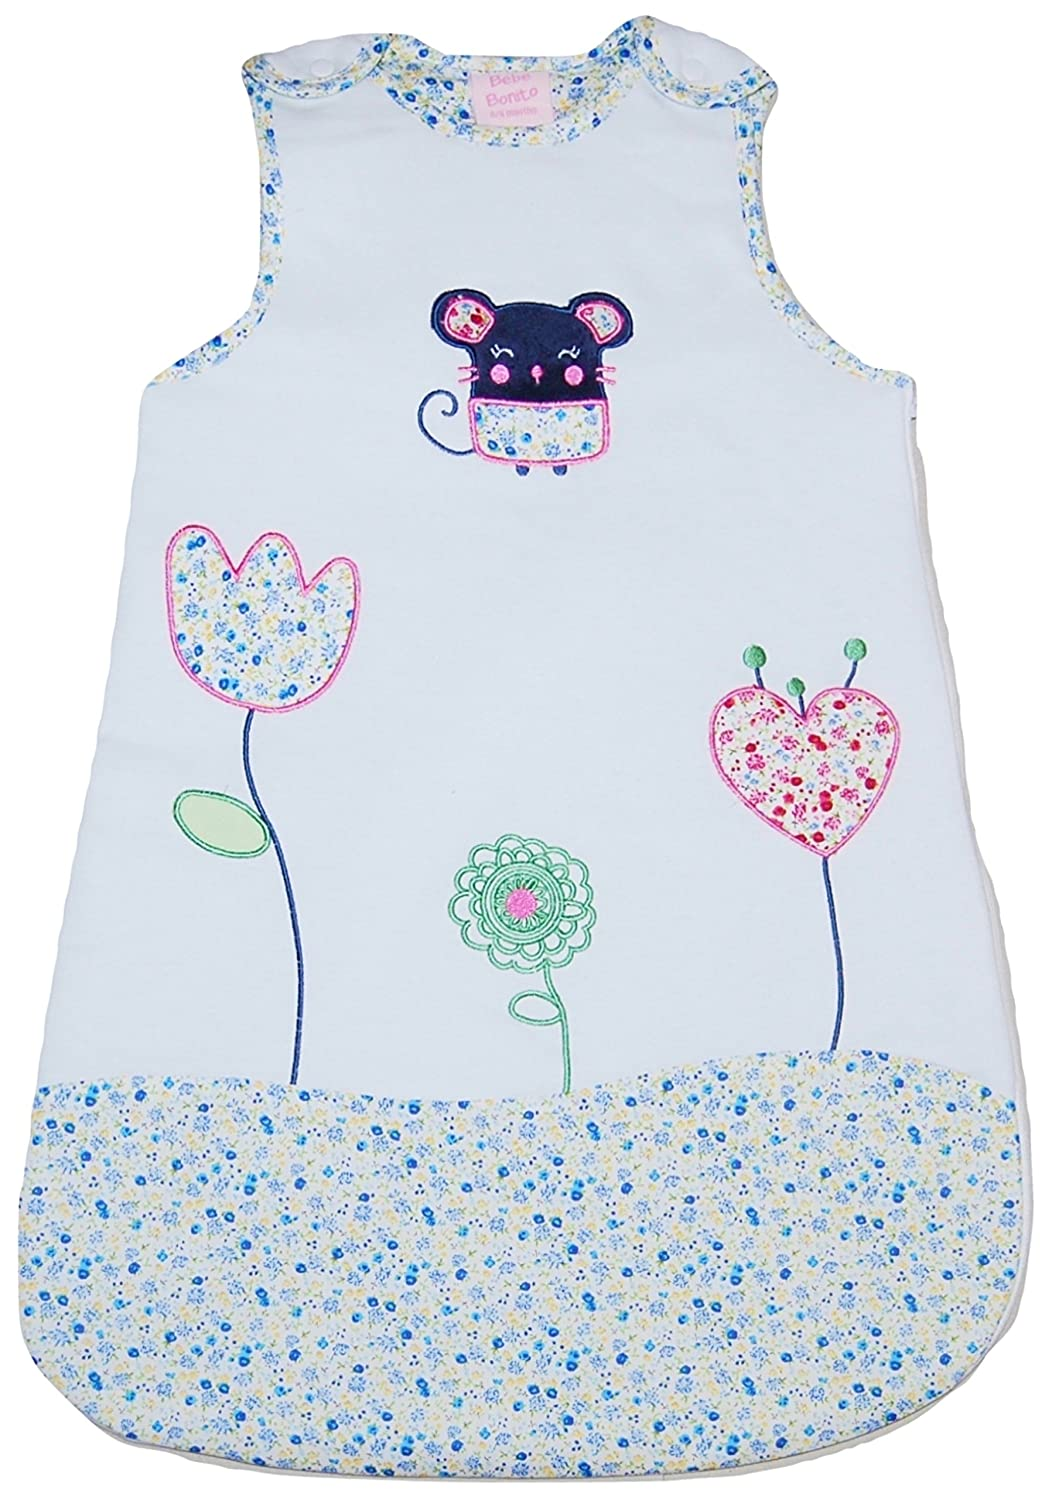 Bebe Bonito Baby Girl Boy Sleeping Bag Growbag White 2.0-2.5 Tog (0-6 Months) MGS Consultancy Ltd